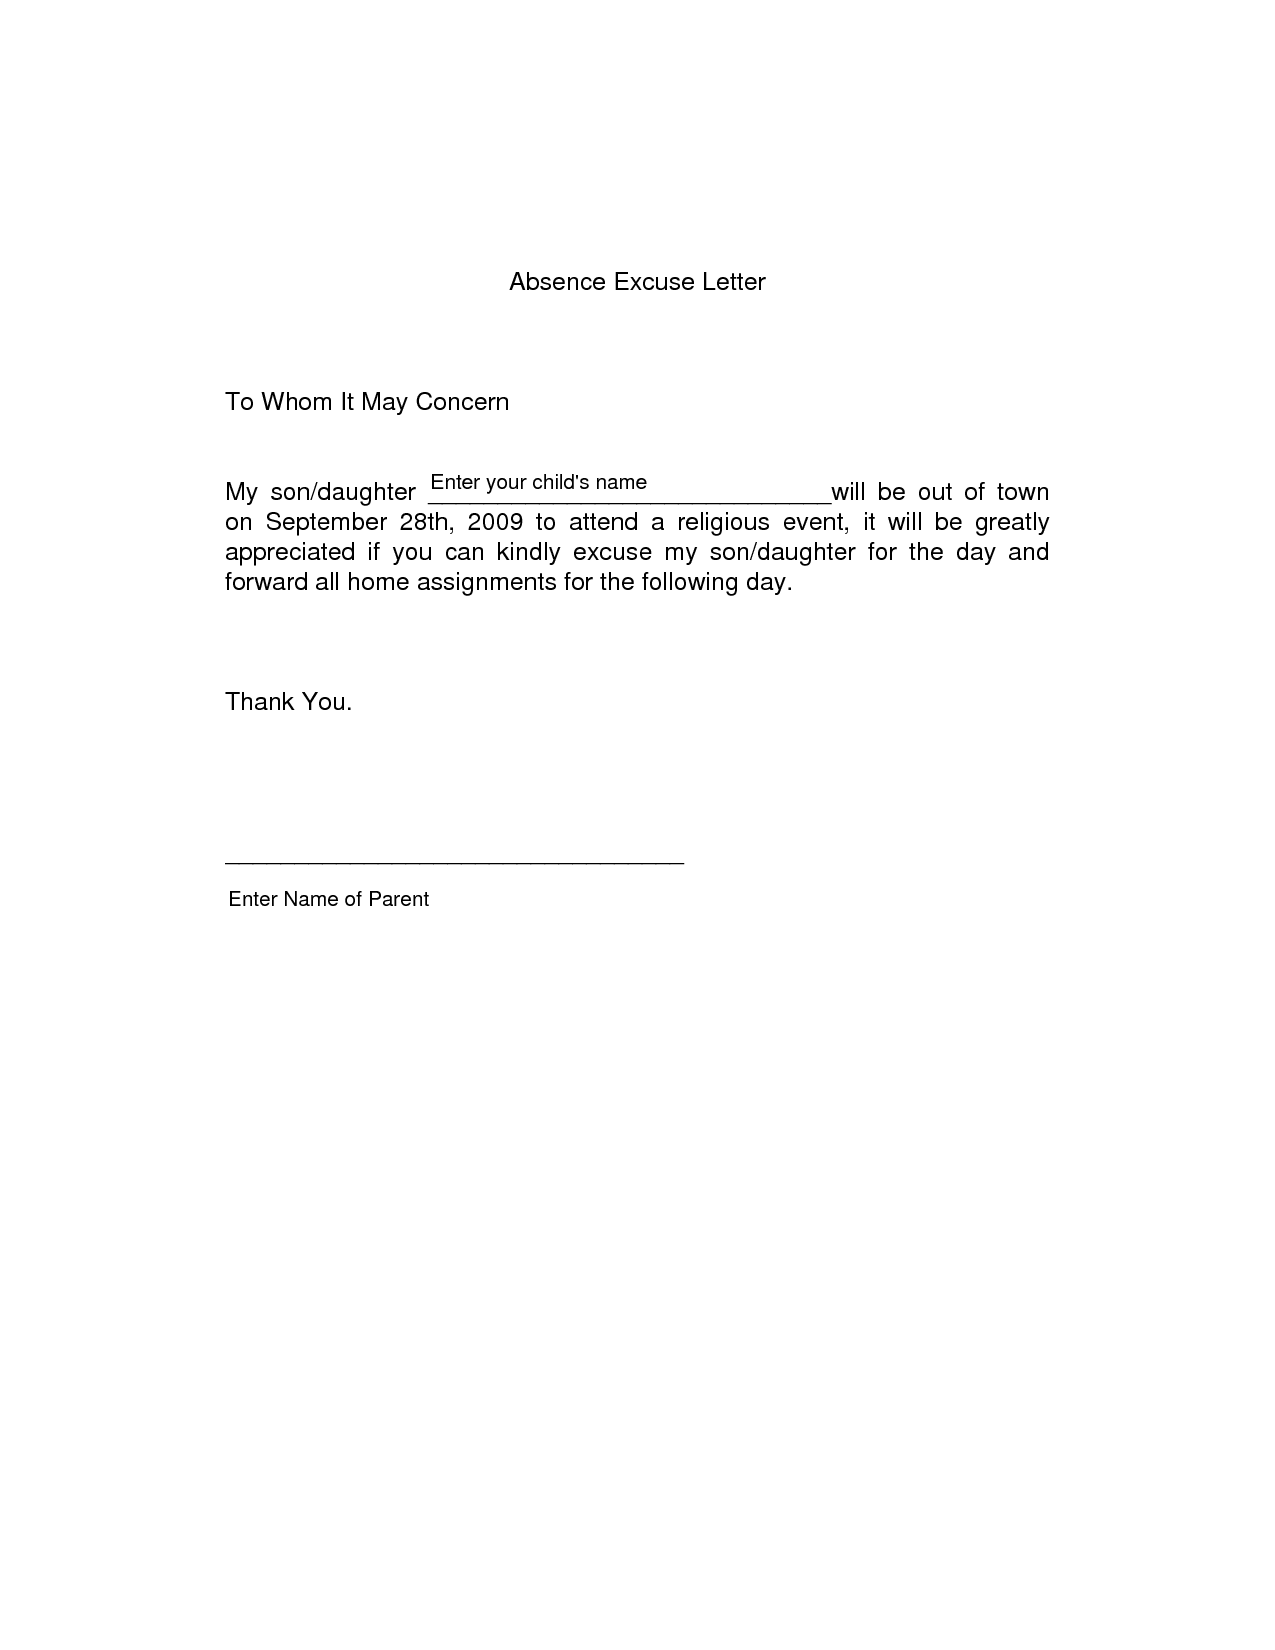 application letter example for students